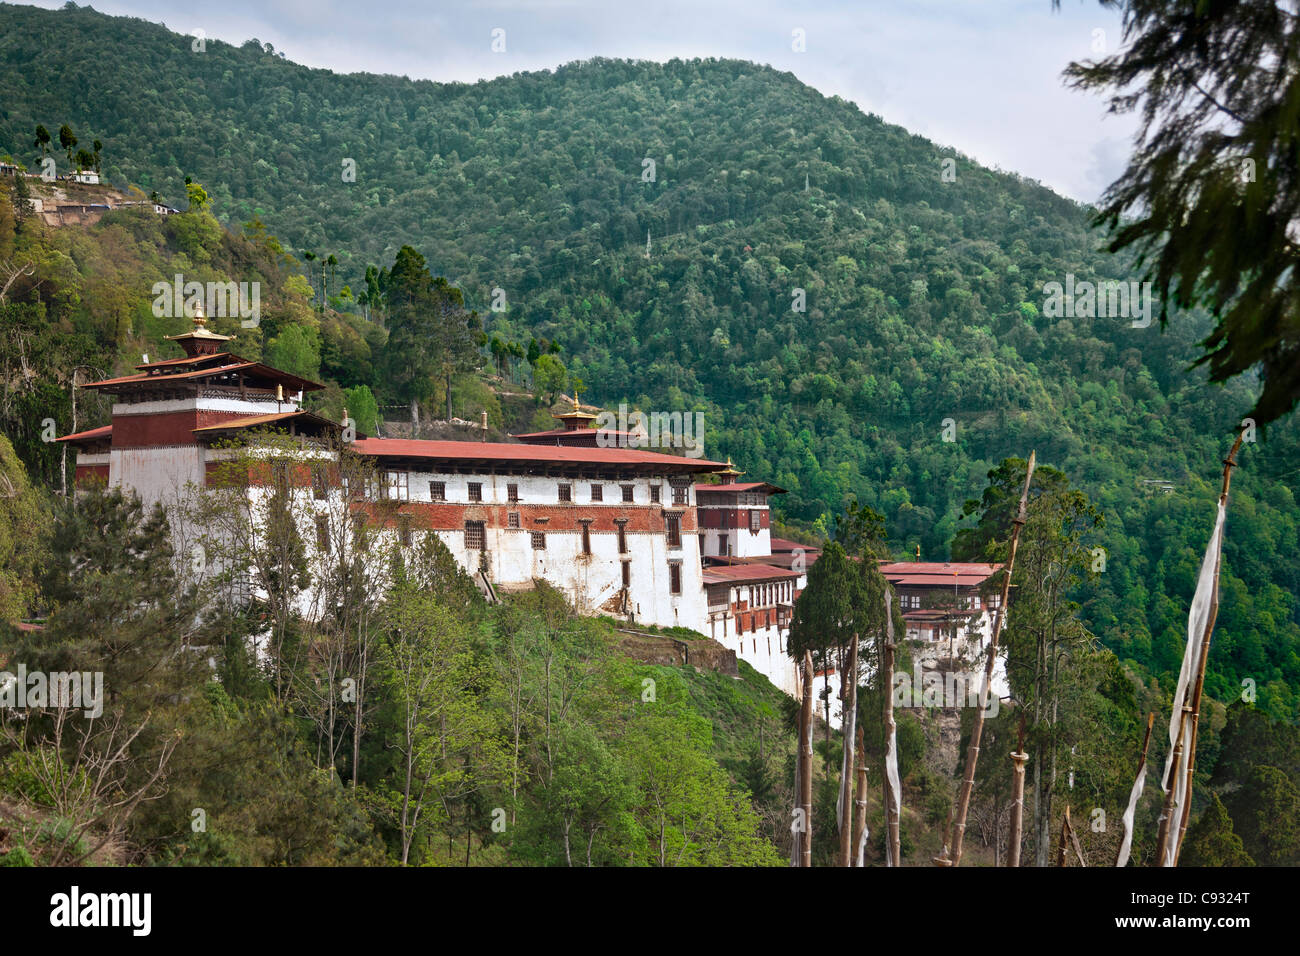 The Trongsa Dzong, or fortress, was built in the 1640s. - Stock Image